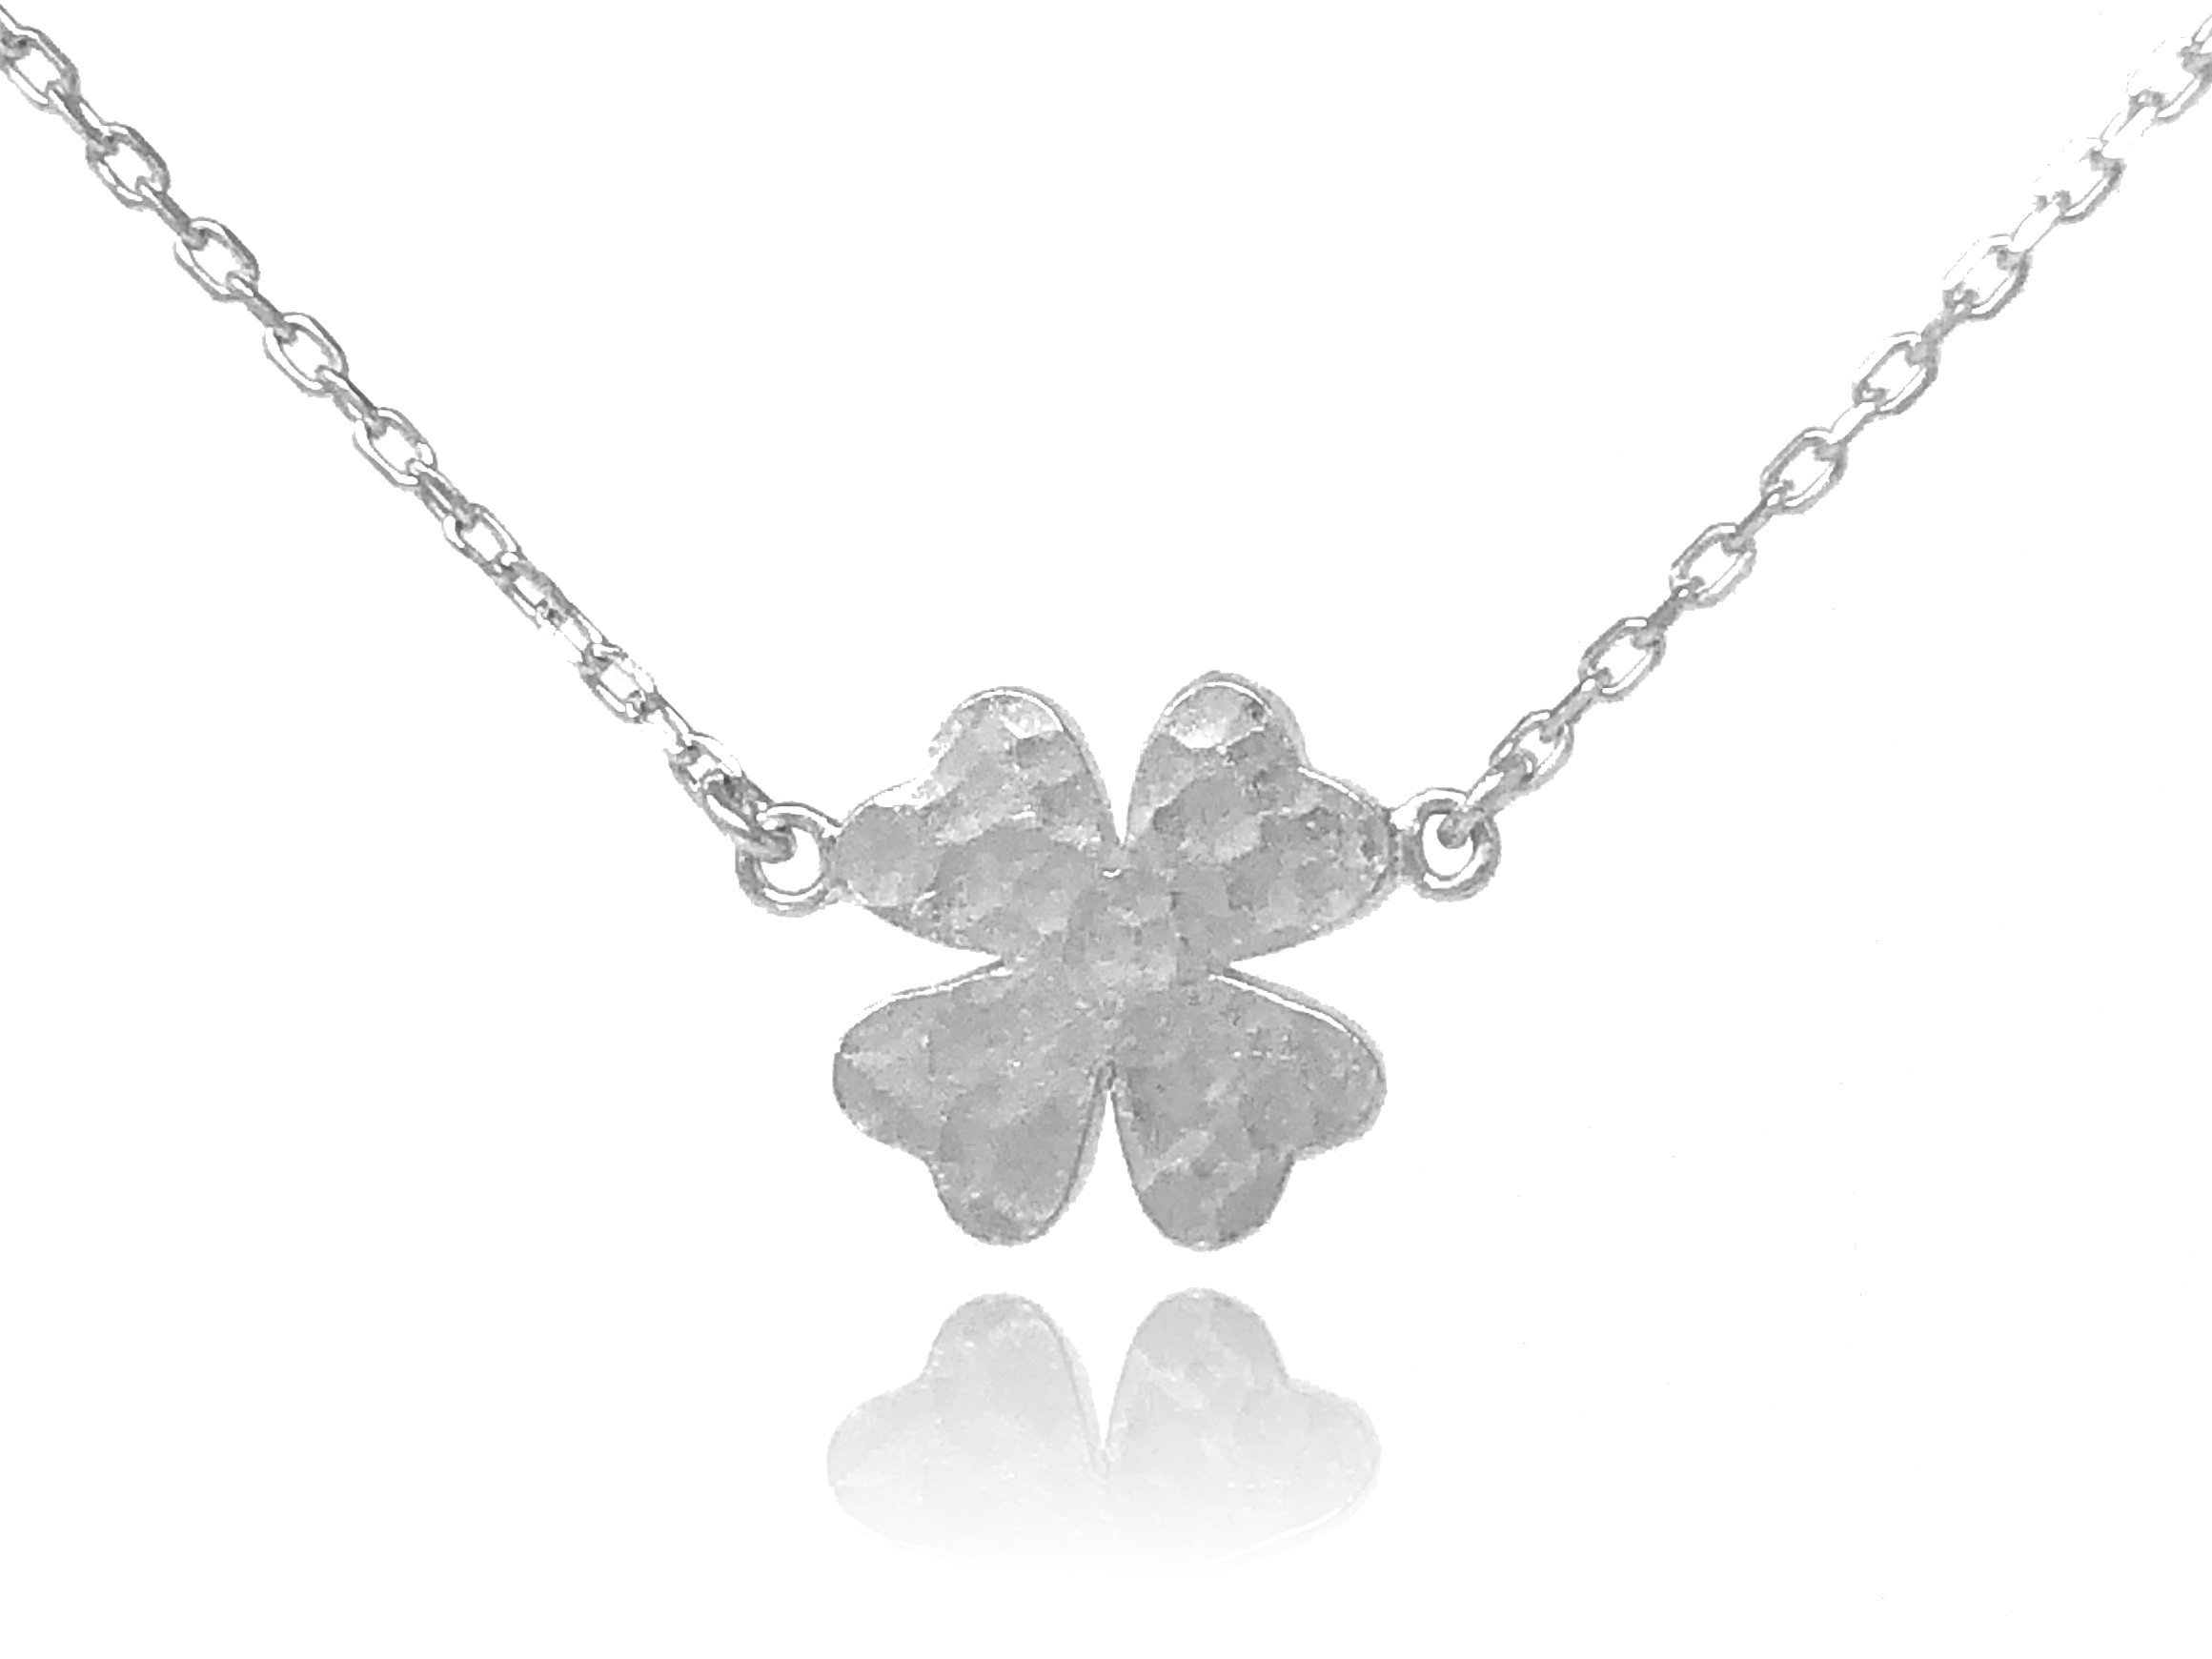 Dote Lucky Four-Leaf Clover Pendant Dainty Genuine .925 Sterling Silver Hammered Necklace w/16-18 Adjustable Chain